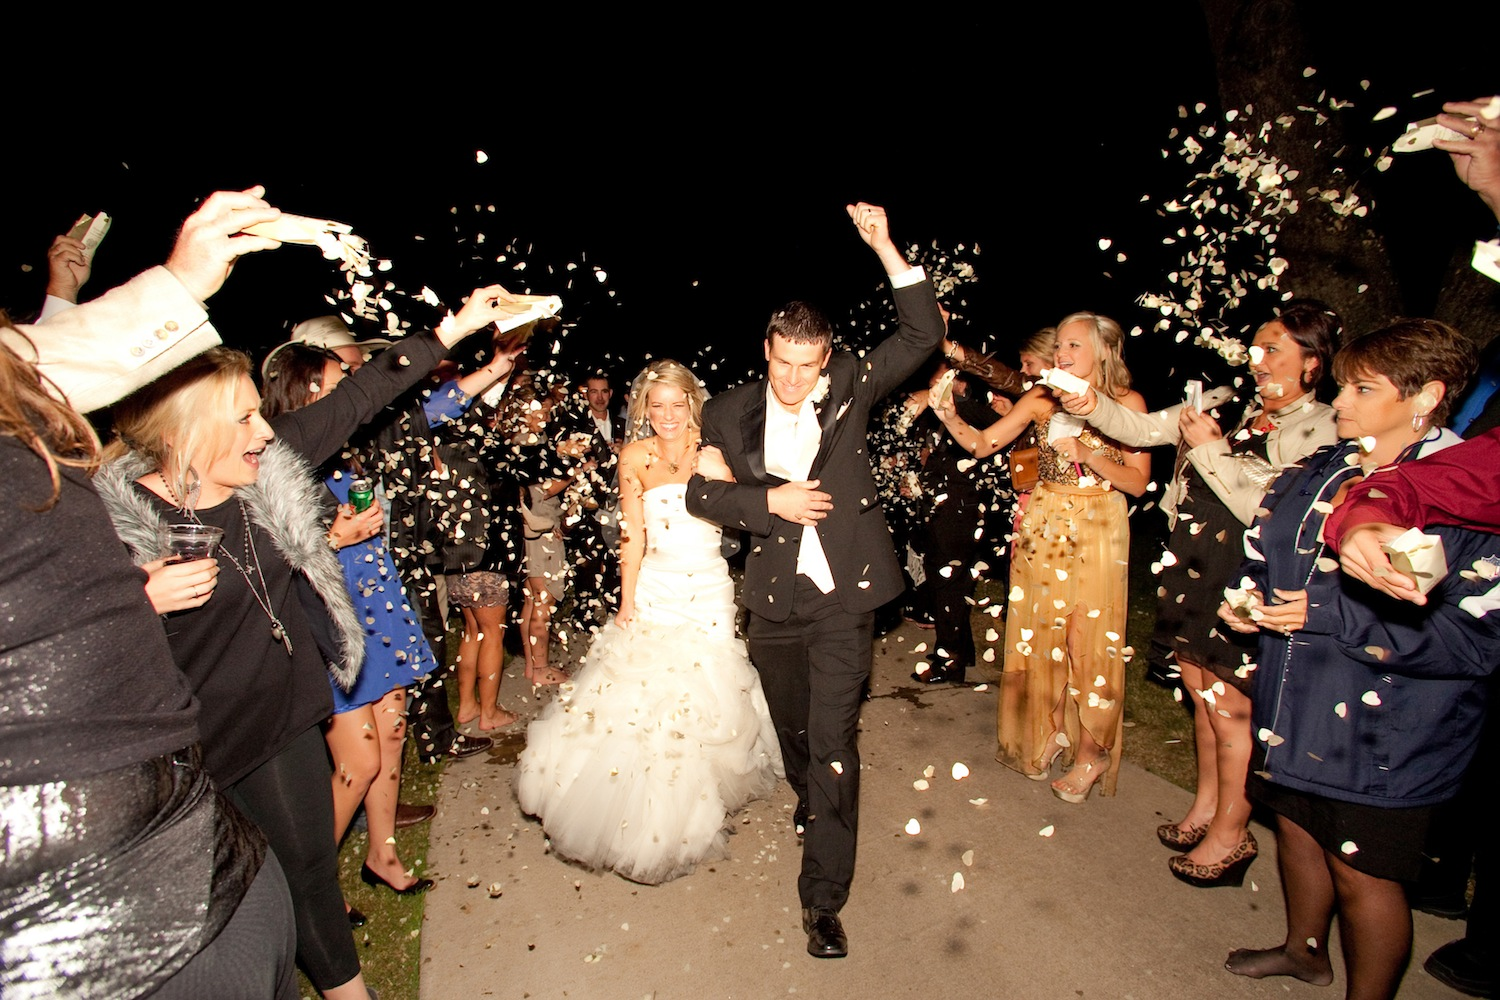 Heart shape confetti toss bride and groom exit